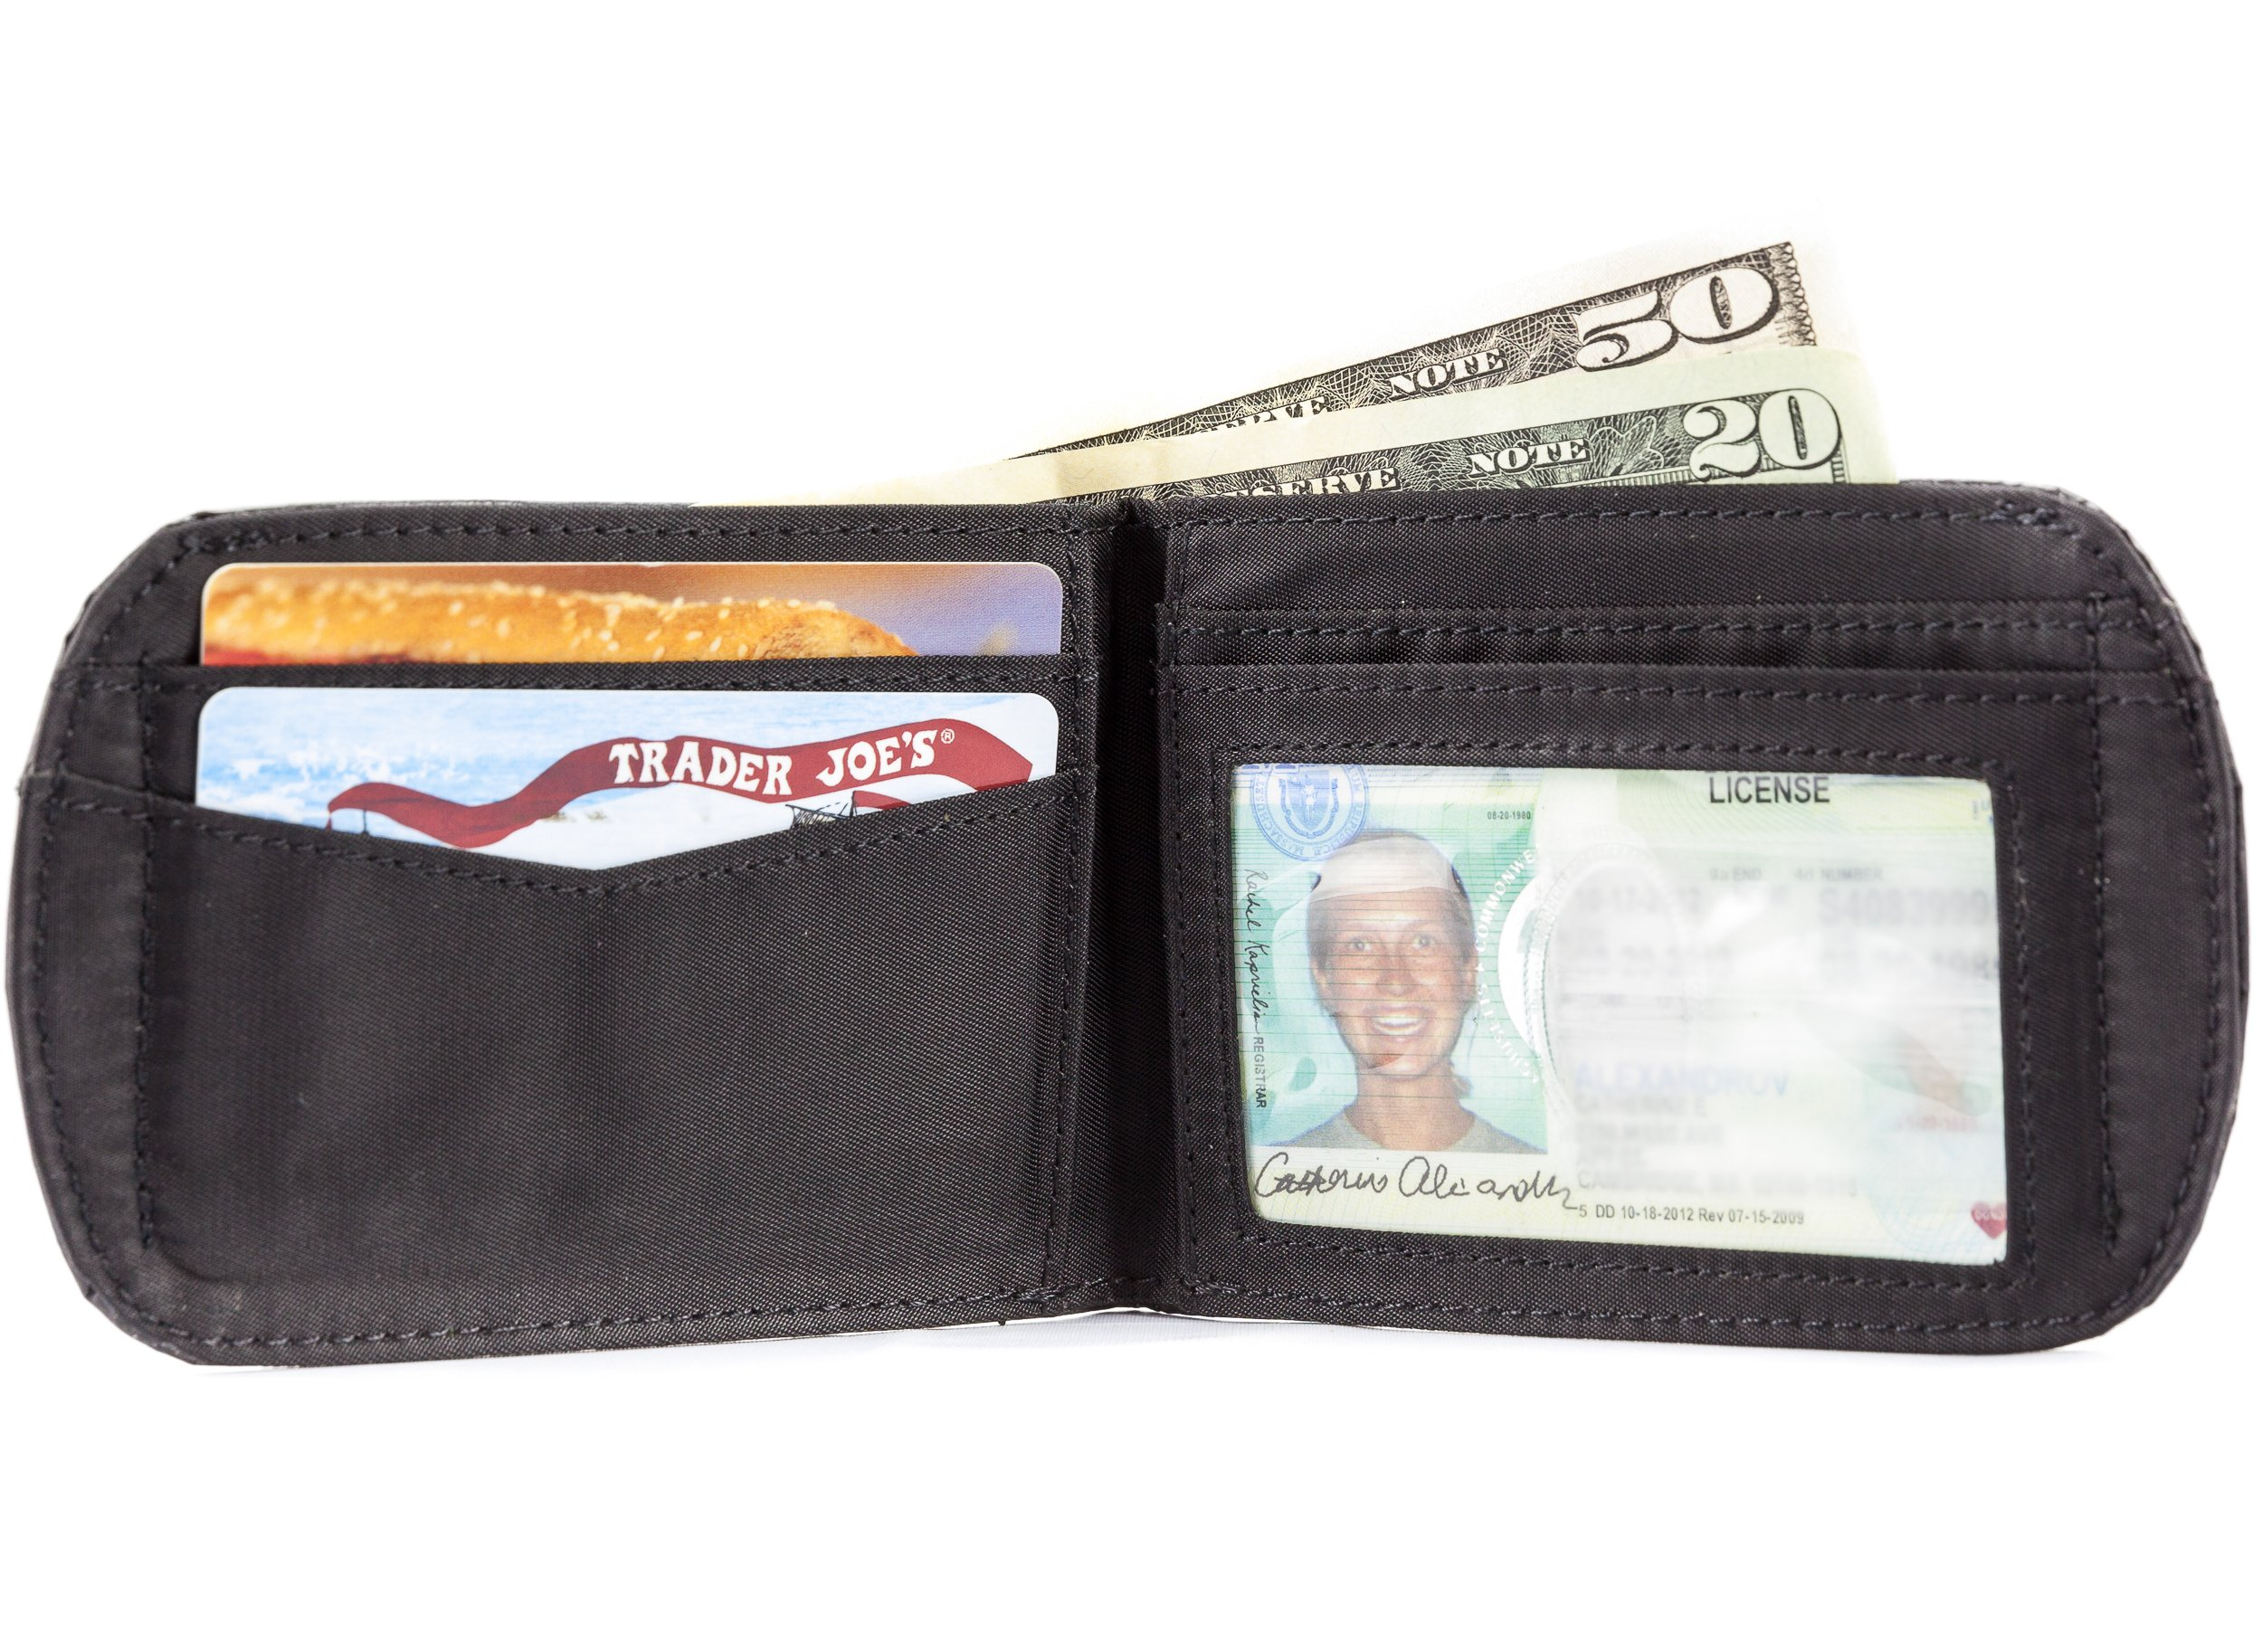 Big Skinny Men's Curve Leather Bi-Fold Slim Wallet, Holds Up to 20 Cards, Black